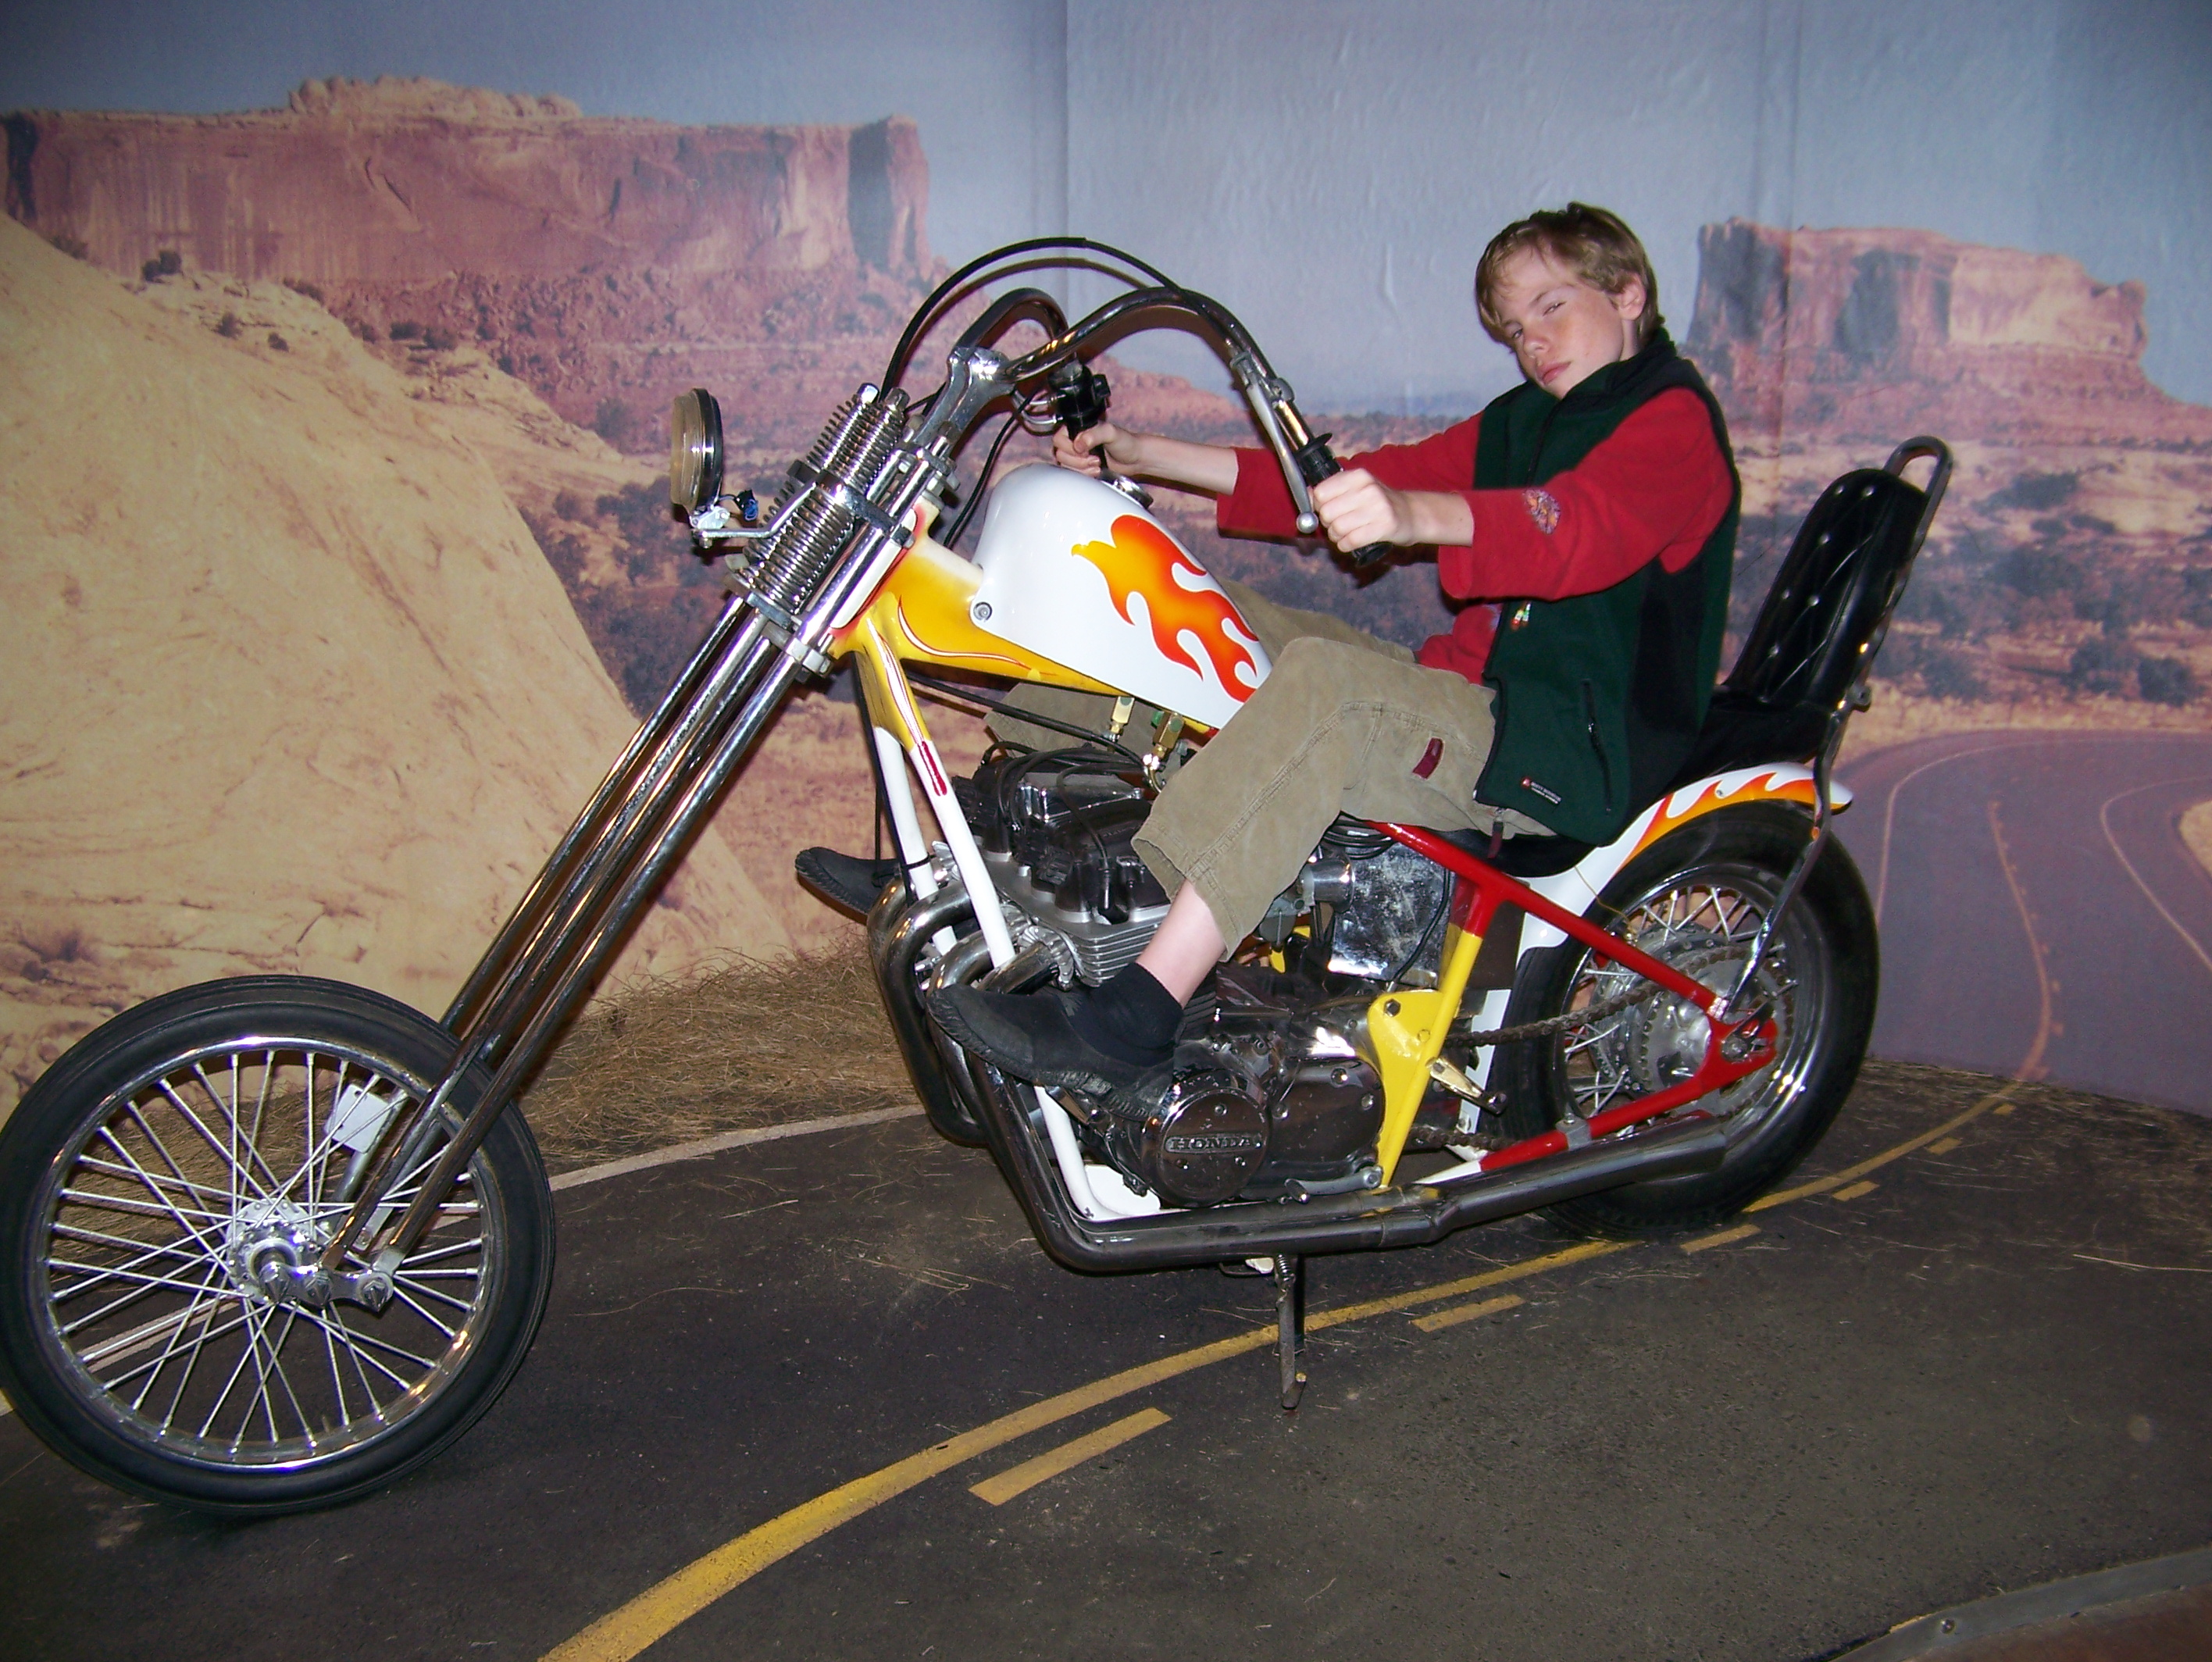 Trevor on a Triumph at the motorcycle museum in Port Joli.